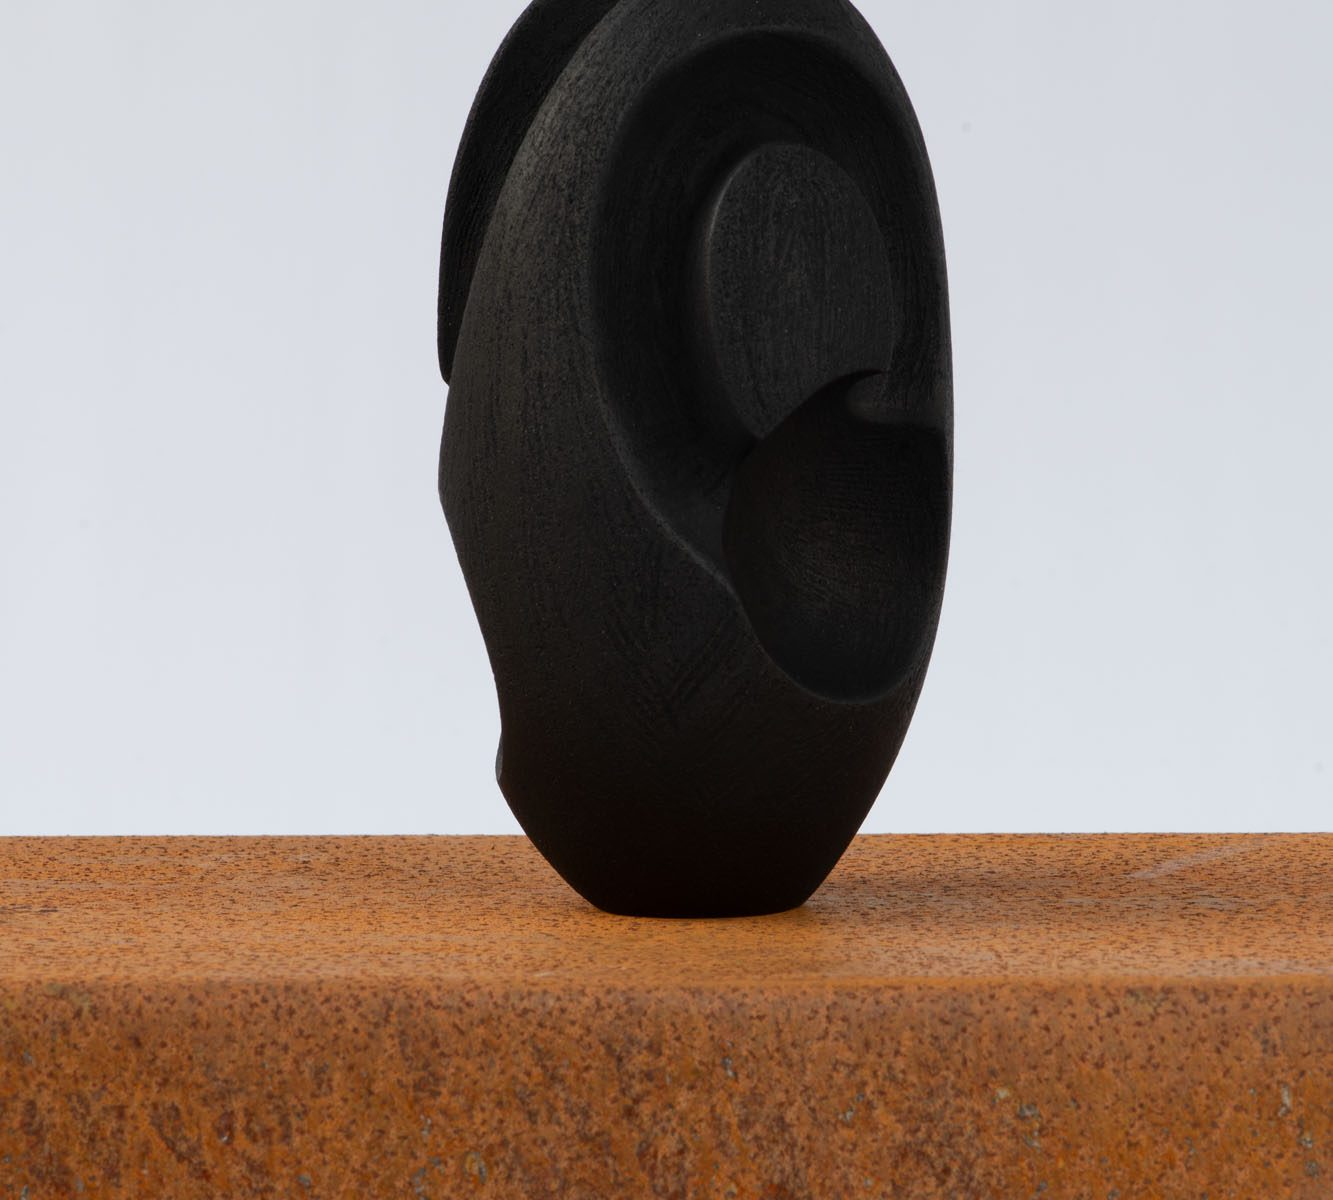 Small Black Vertical Form - Oct 2020 #5